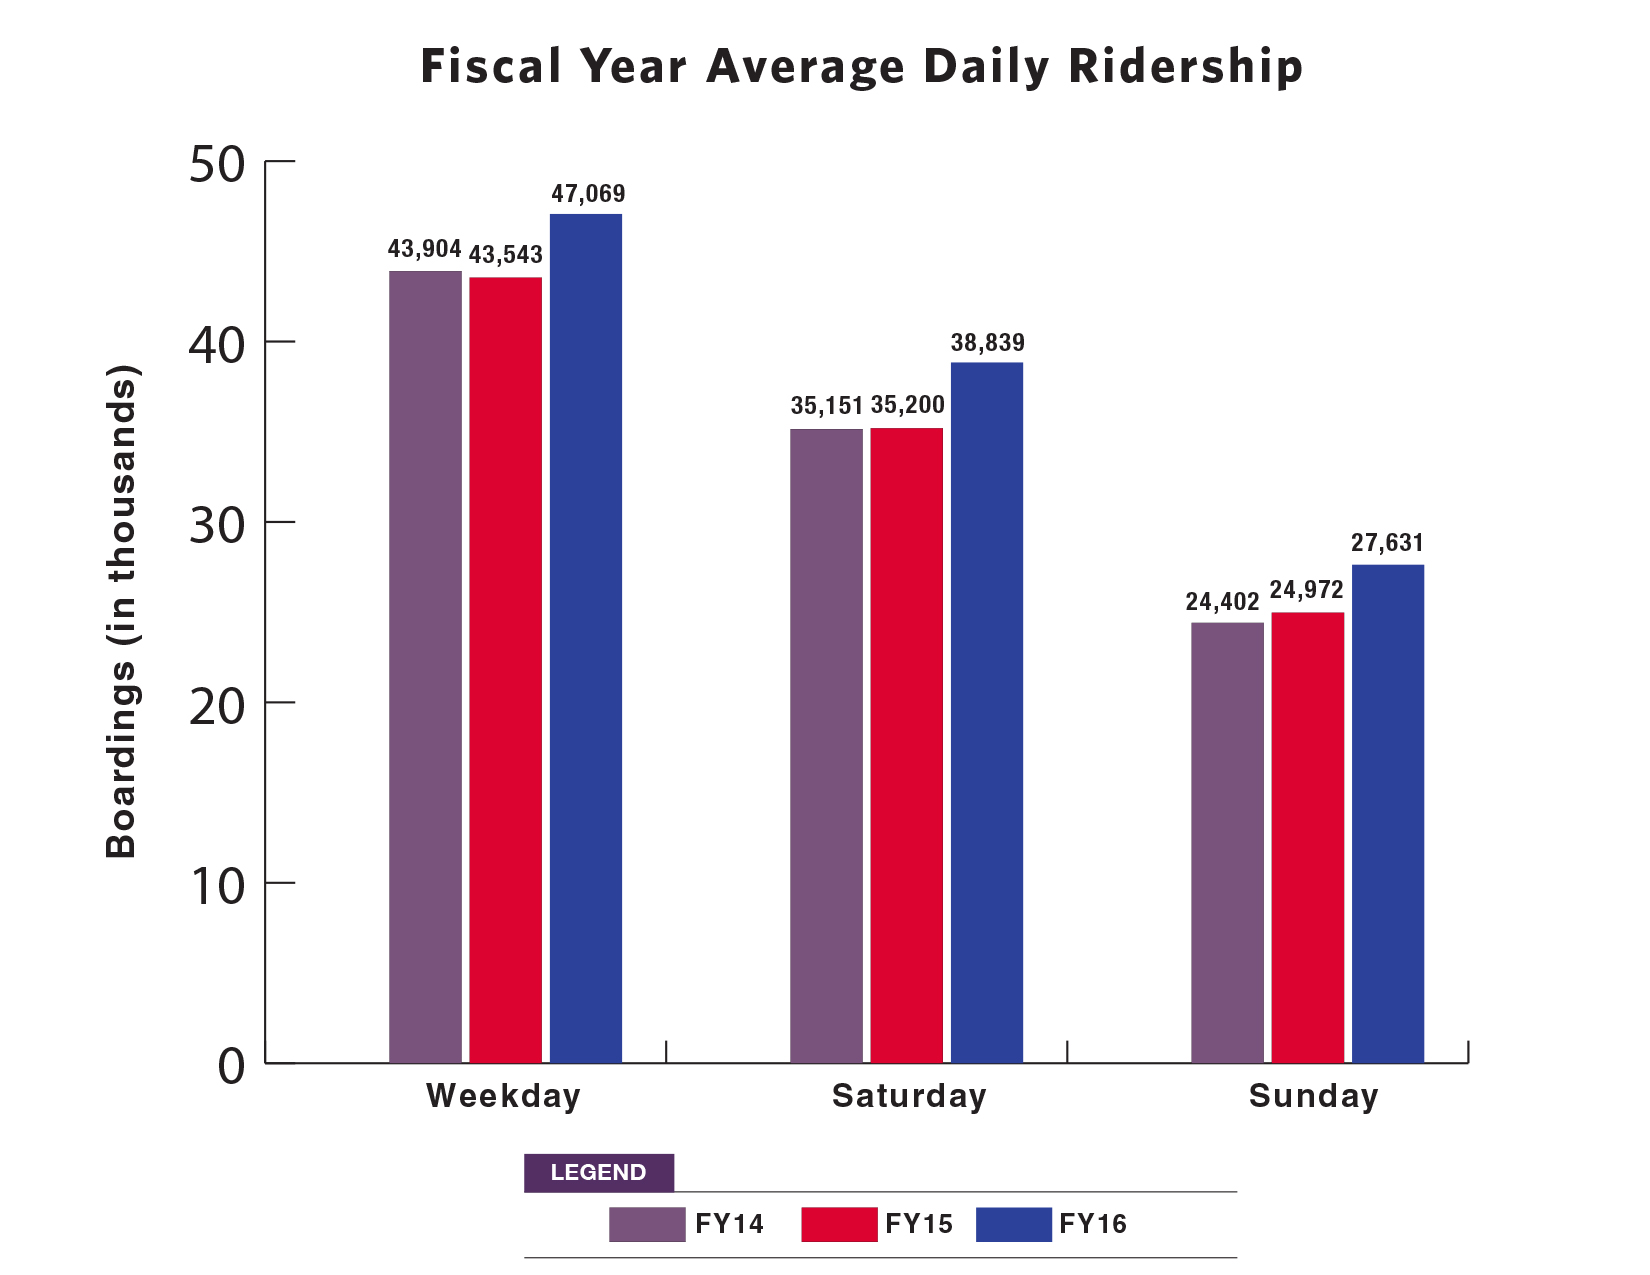 Average Daily Ridership 2013 - 2016